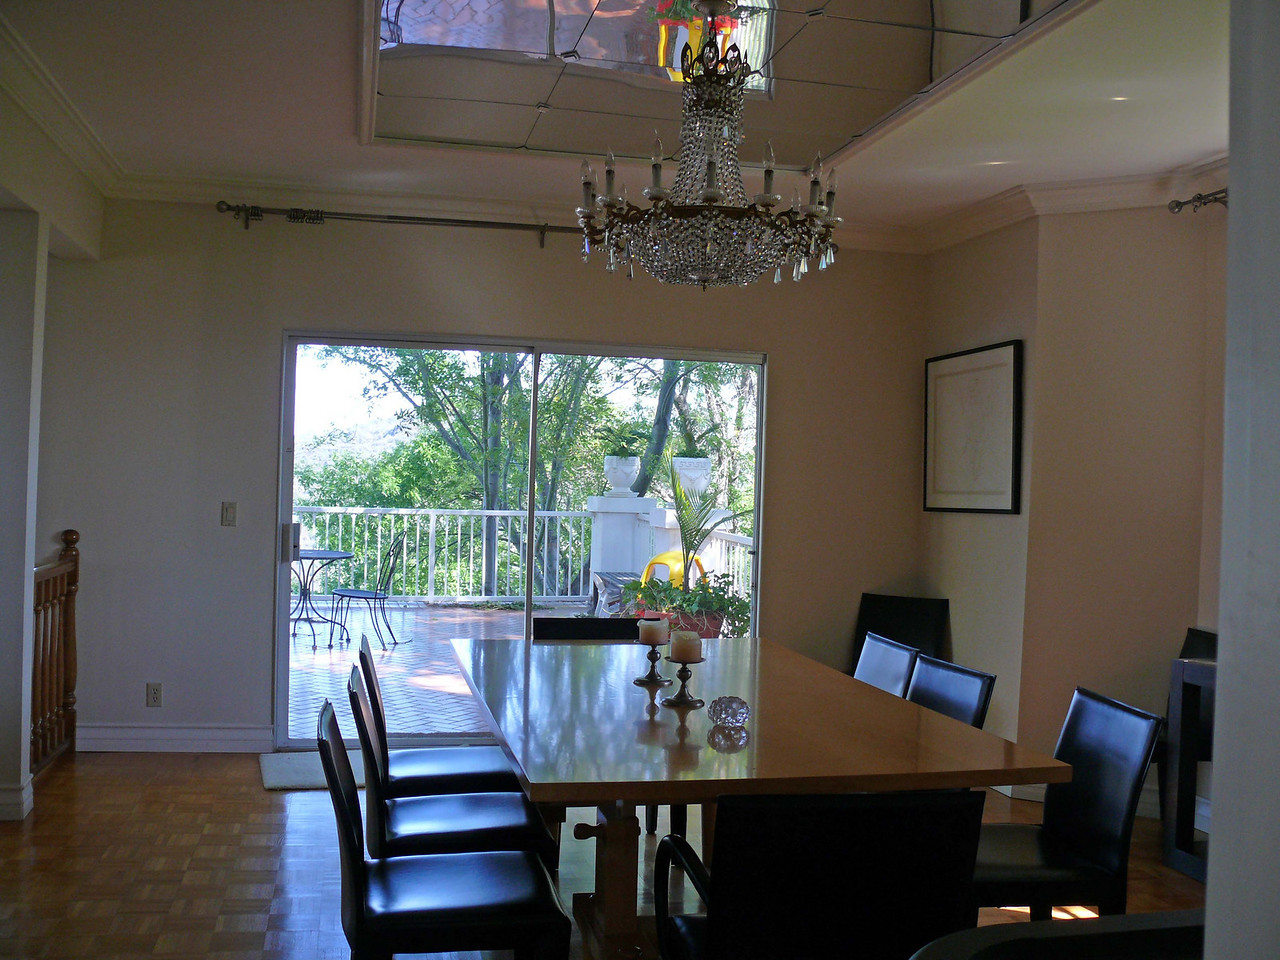 480 Bel Air dining room